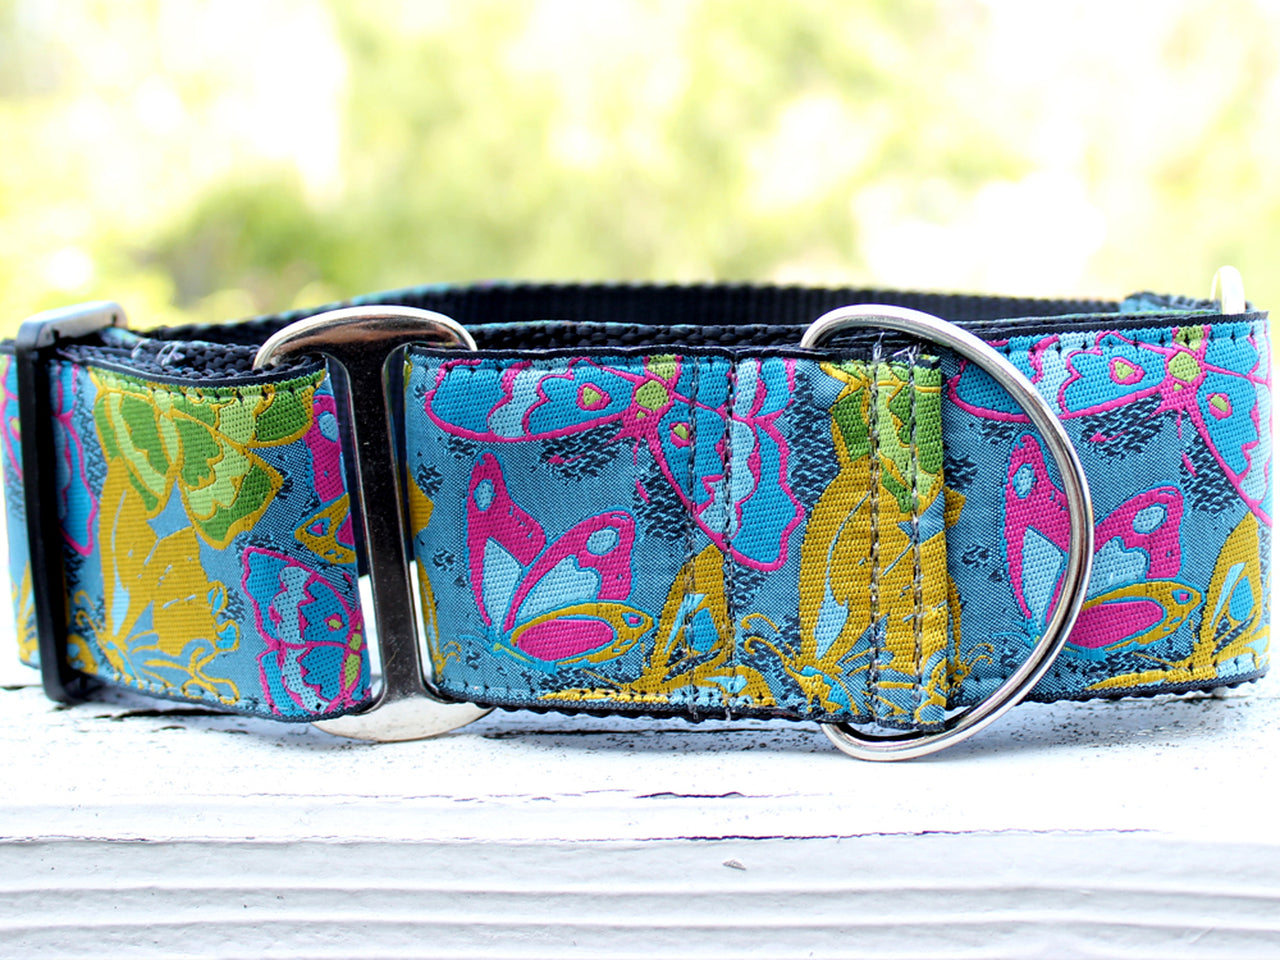 DIVA DOG BUTTERFLY GARDEN EXTRA WIDE MARTINGALE COLLAR